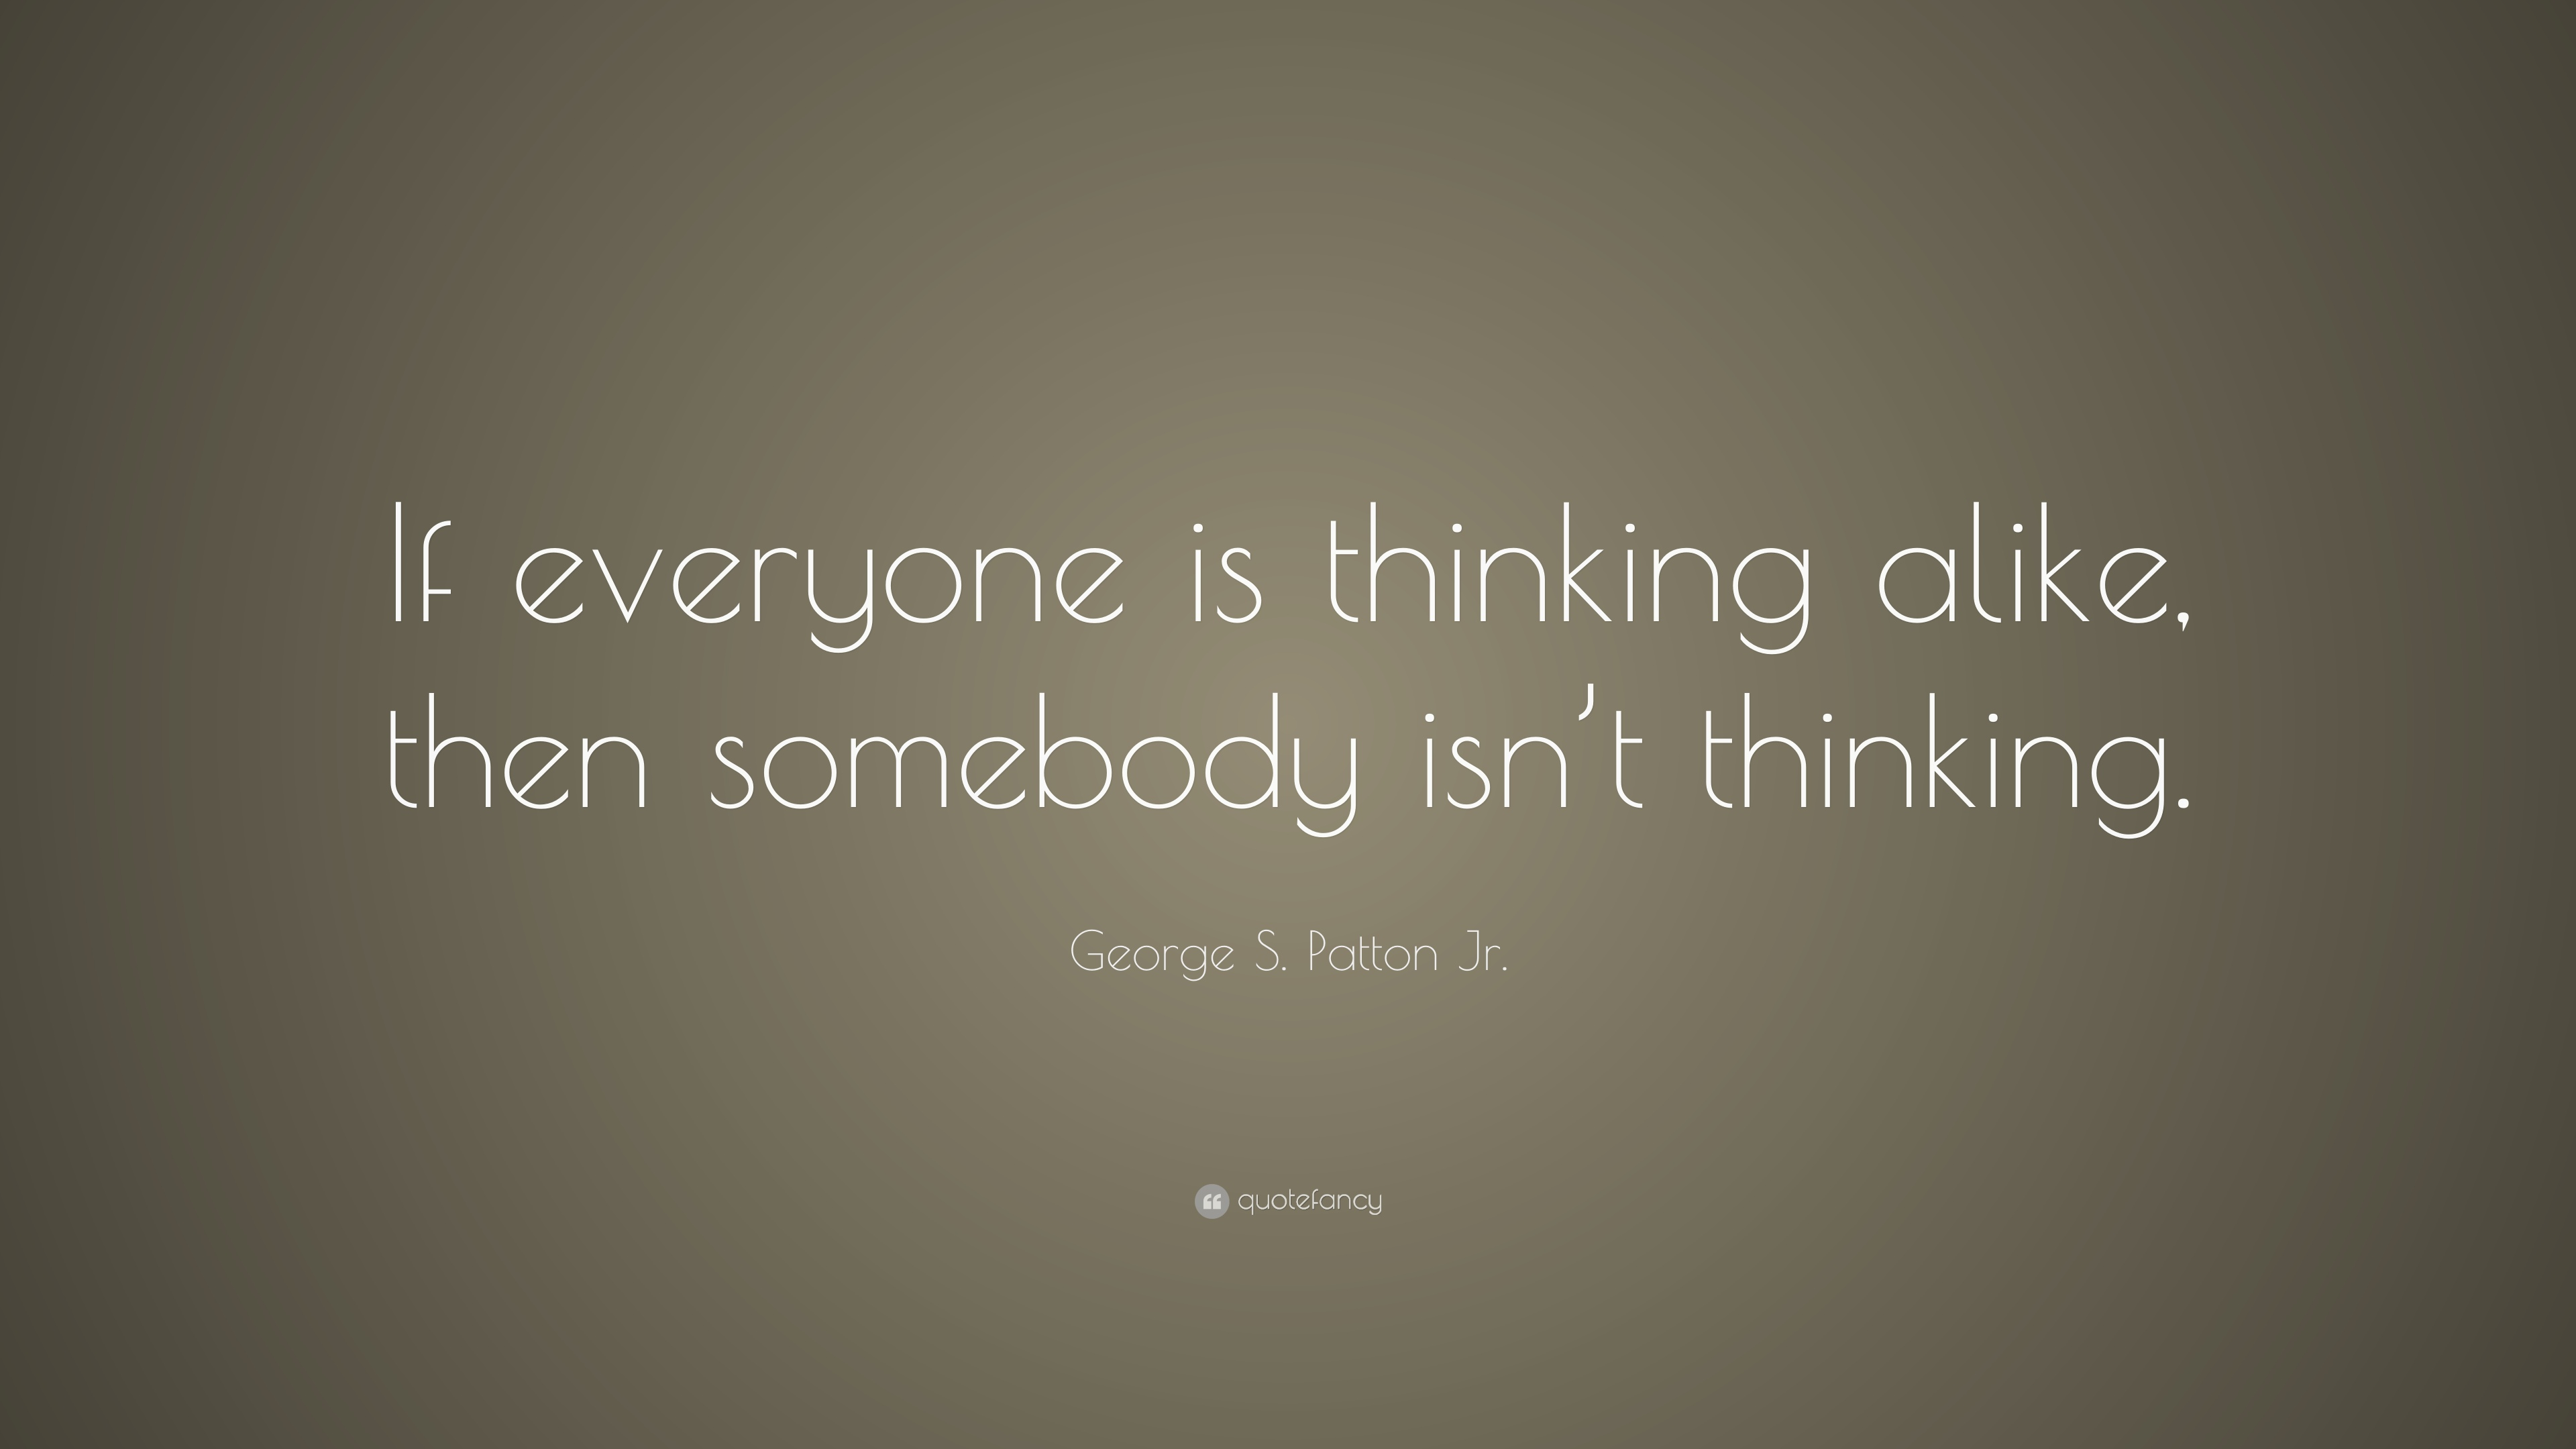 Napoleon Hill Quotes Wallpaper George S Patton Jr Quote If Everyone Is Thinking Alike